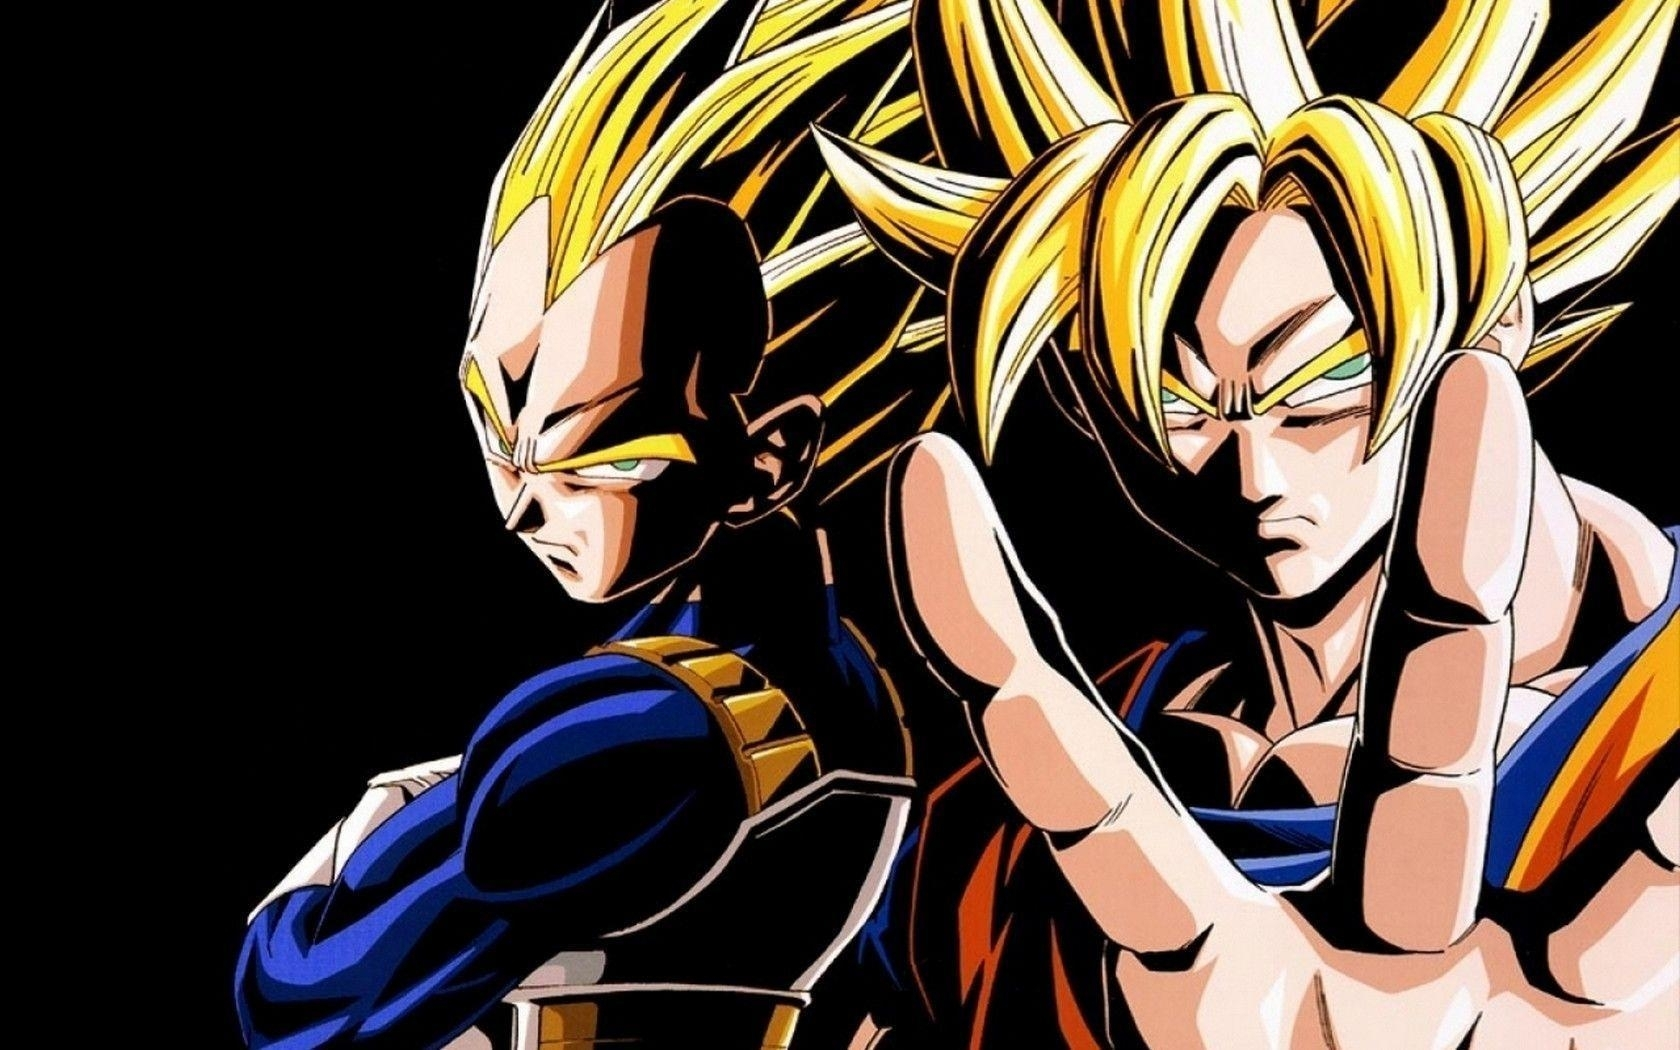 10 New Wallpaper Of Dragon Ball Z FULL HD 1920×1080 For PC Background